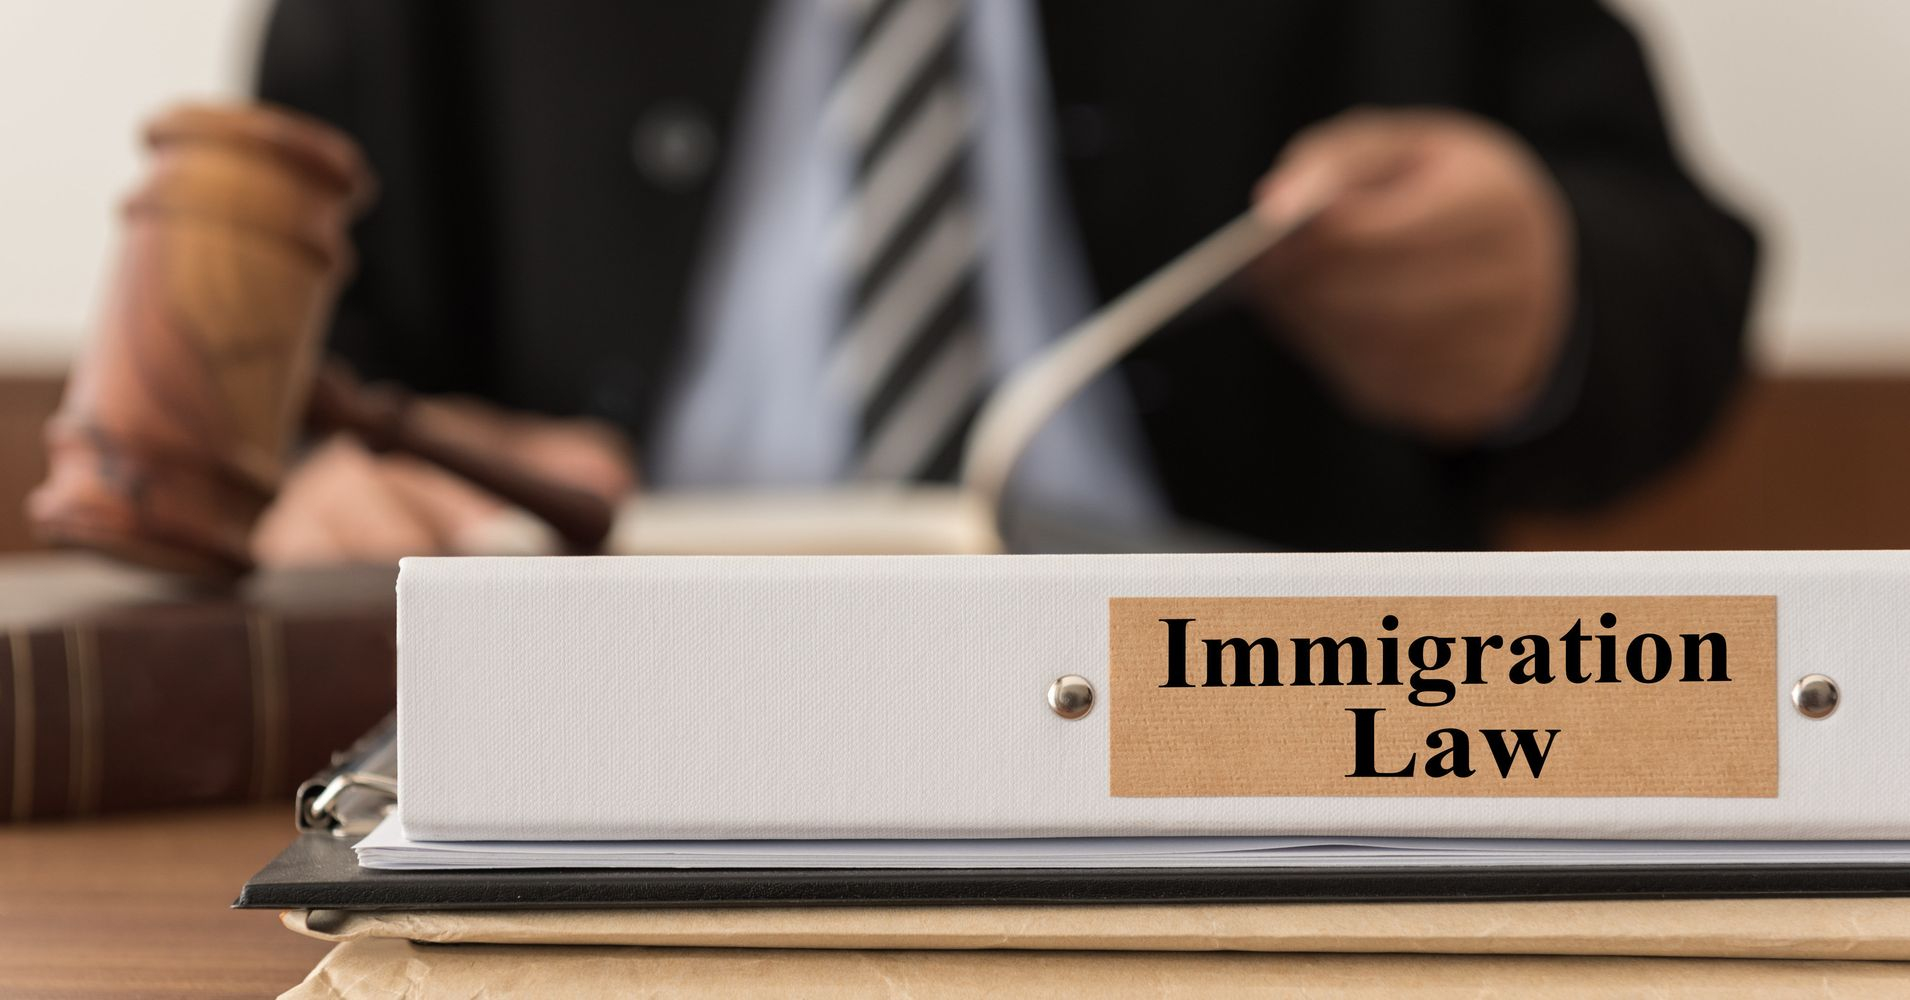 Court Interpreters Say When Theyre Mistreated Immigrants Suffer